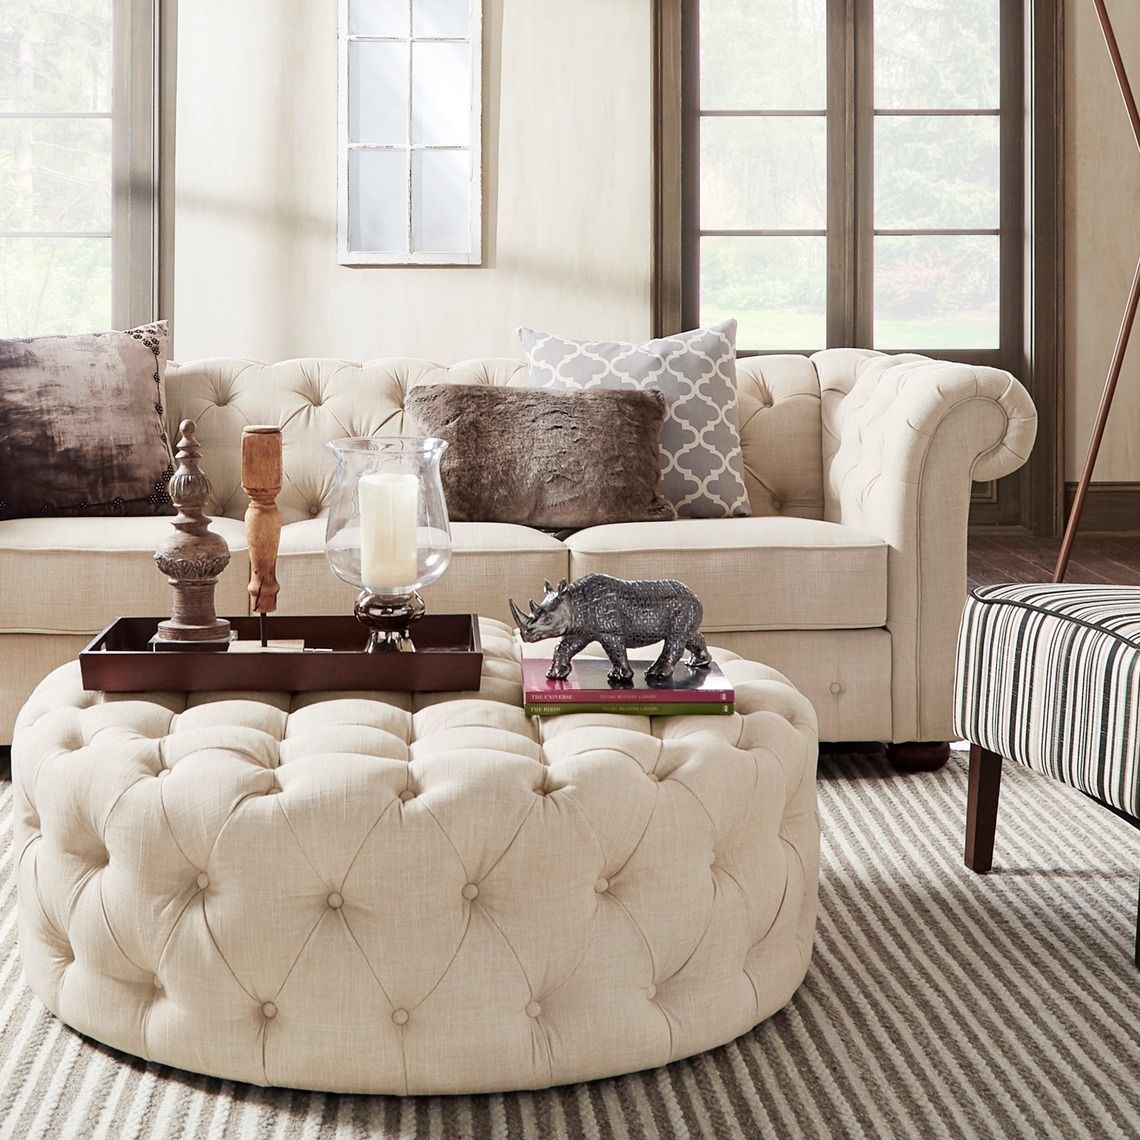 tribecca home knightsbridge beige linen tufted scroll arm chesterfield sofa how to clean fabric stains humphery and love seat